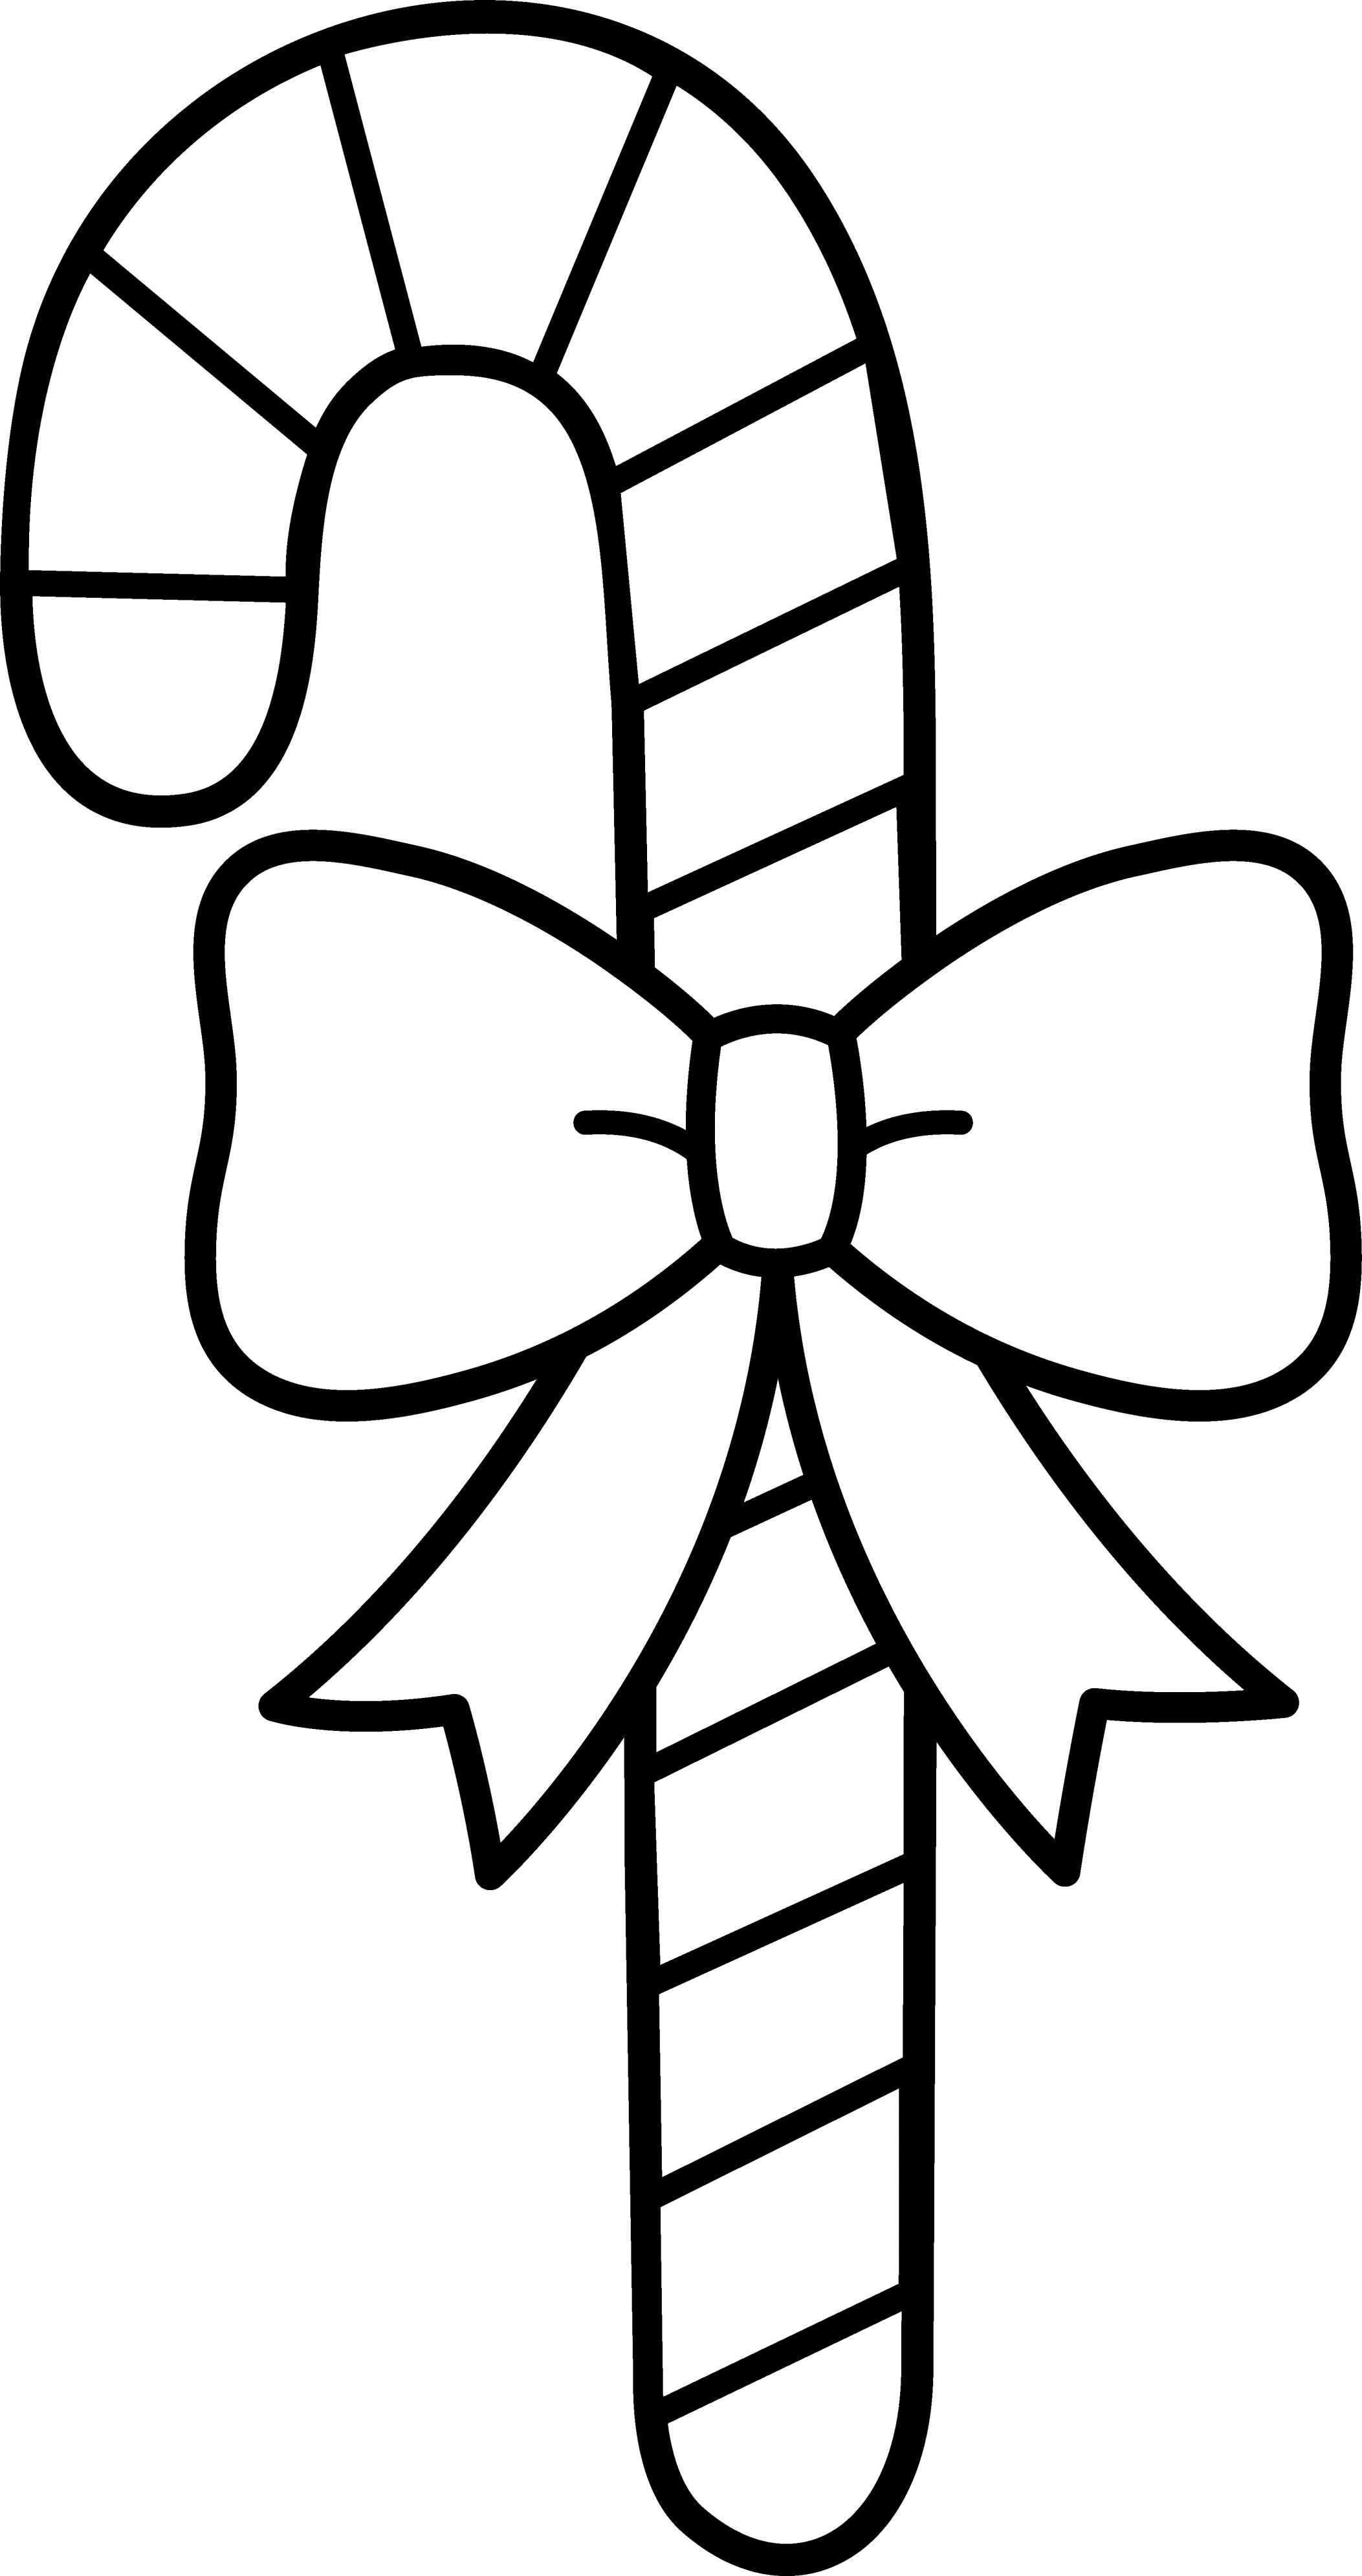 Free Printable Christmas Coloring Pages Candy Canes With Of